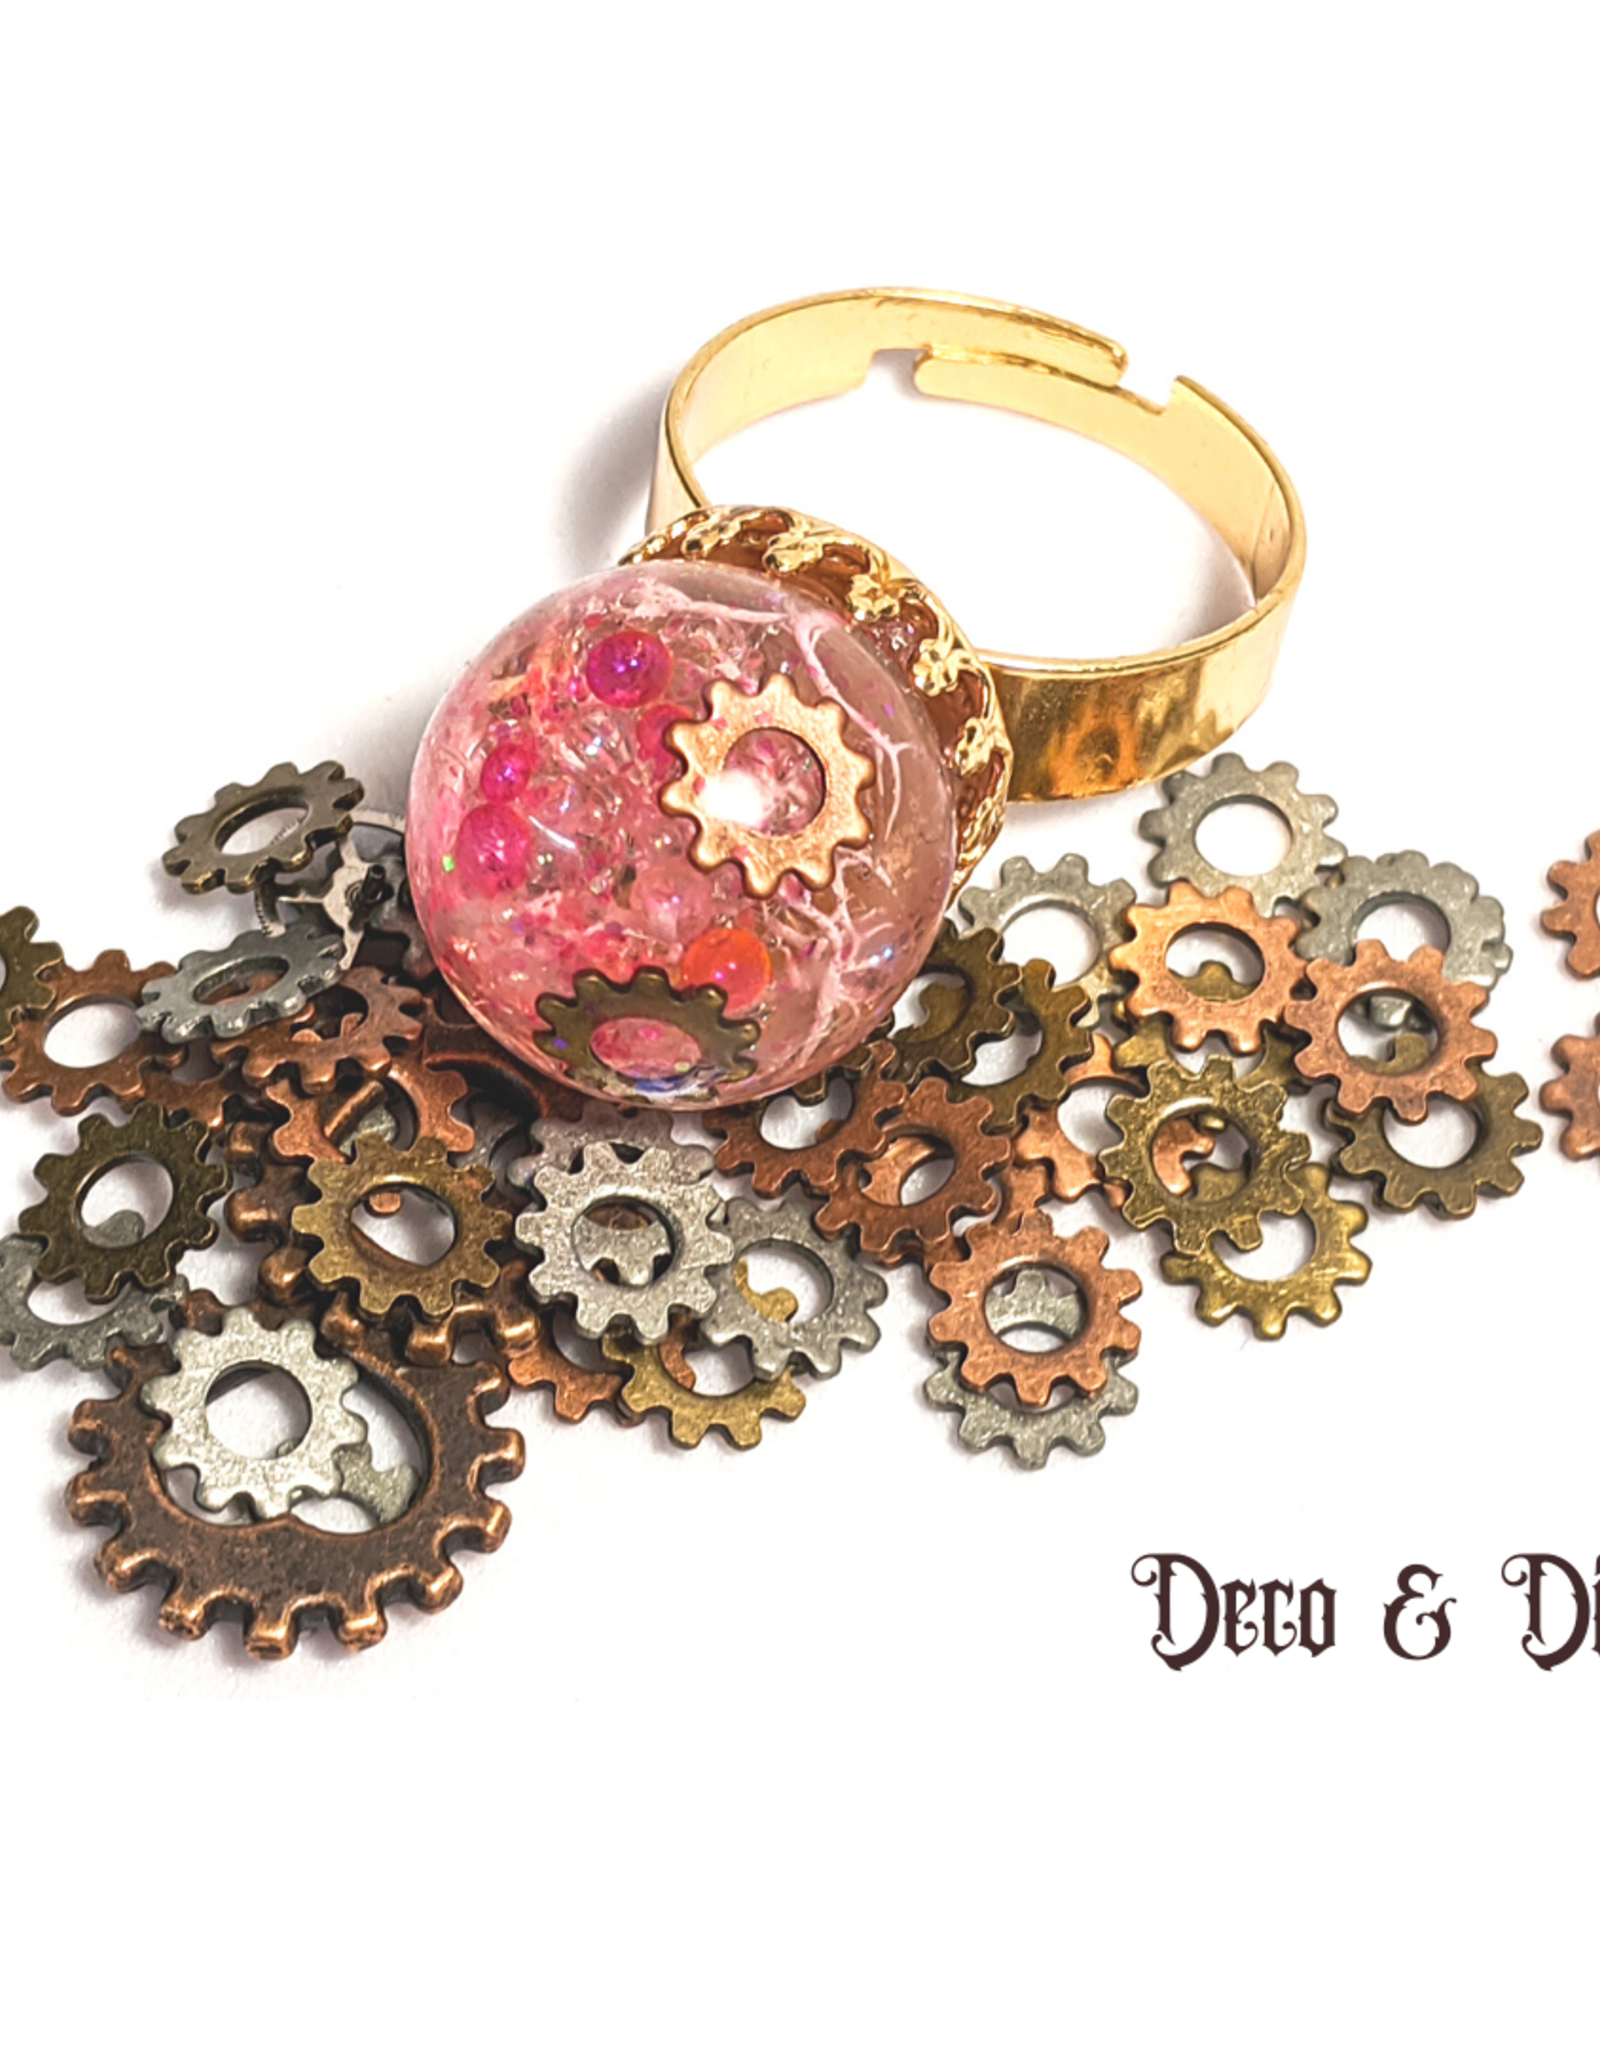 Deco and Dice Moss Ring